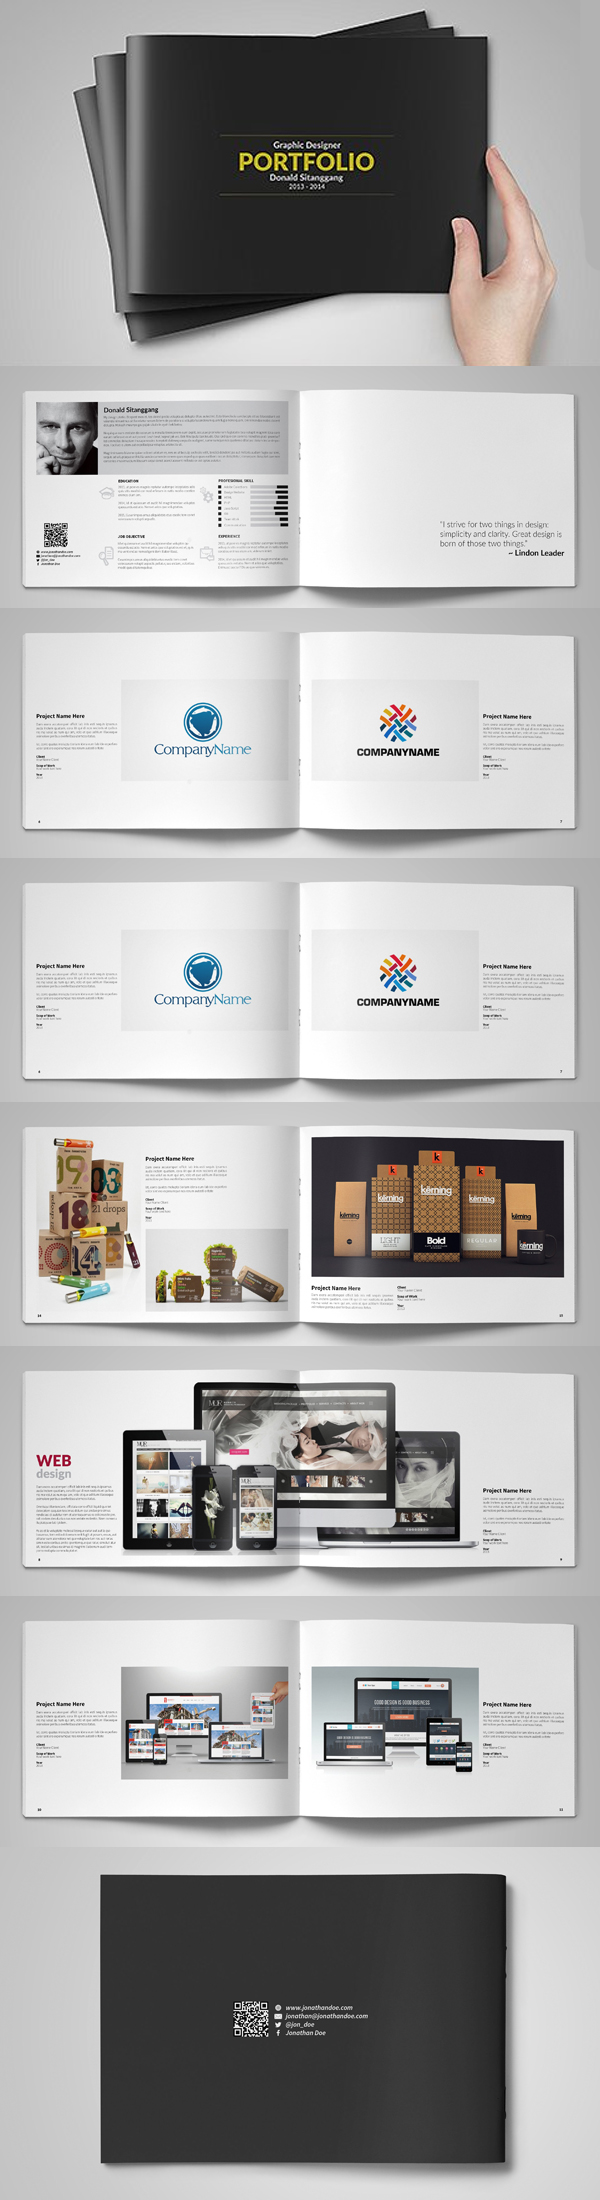 100 Professional Corporate Brochure Templates - 23